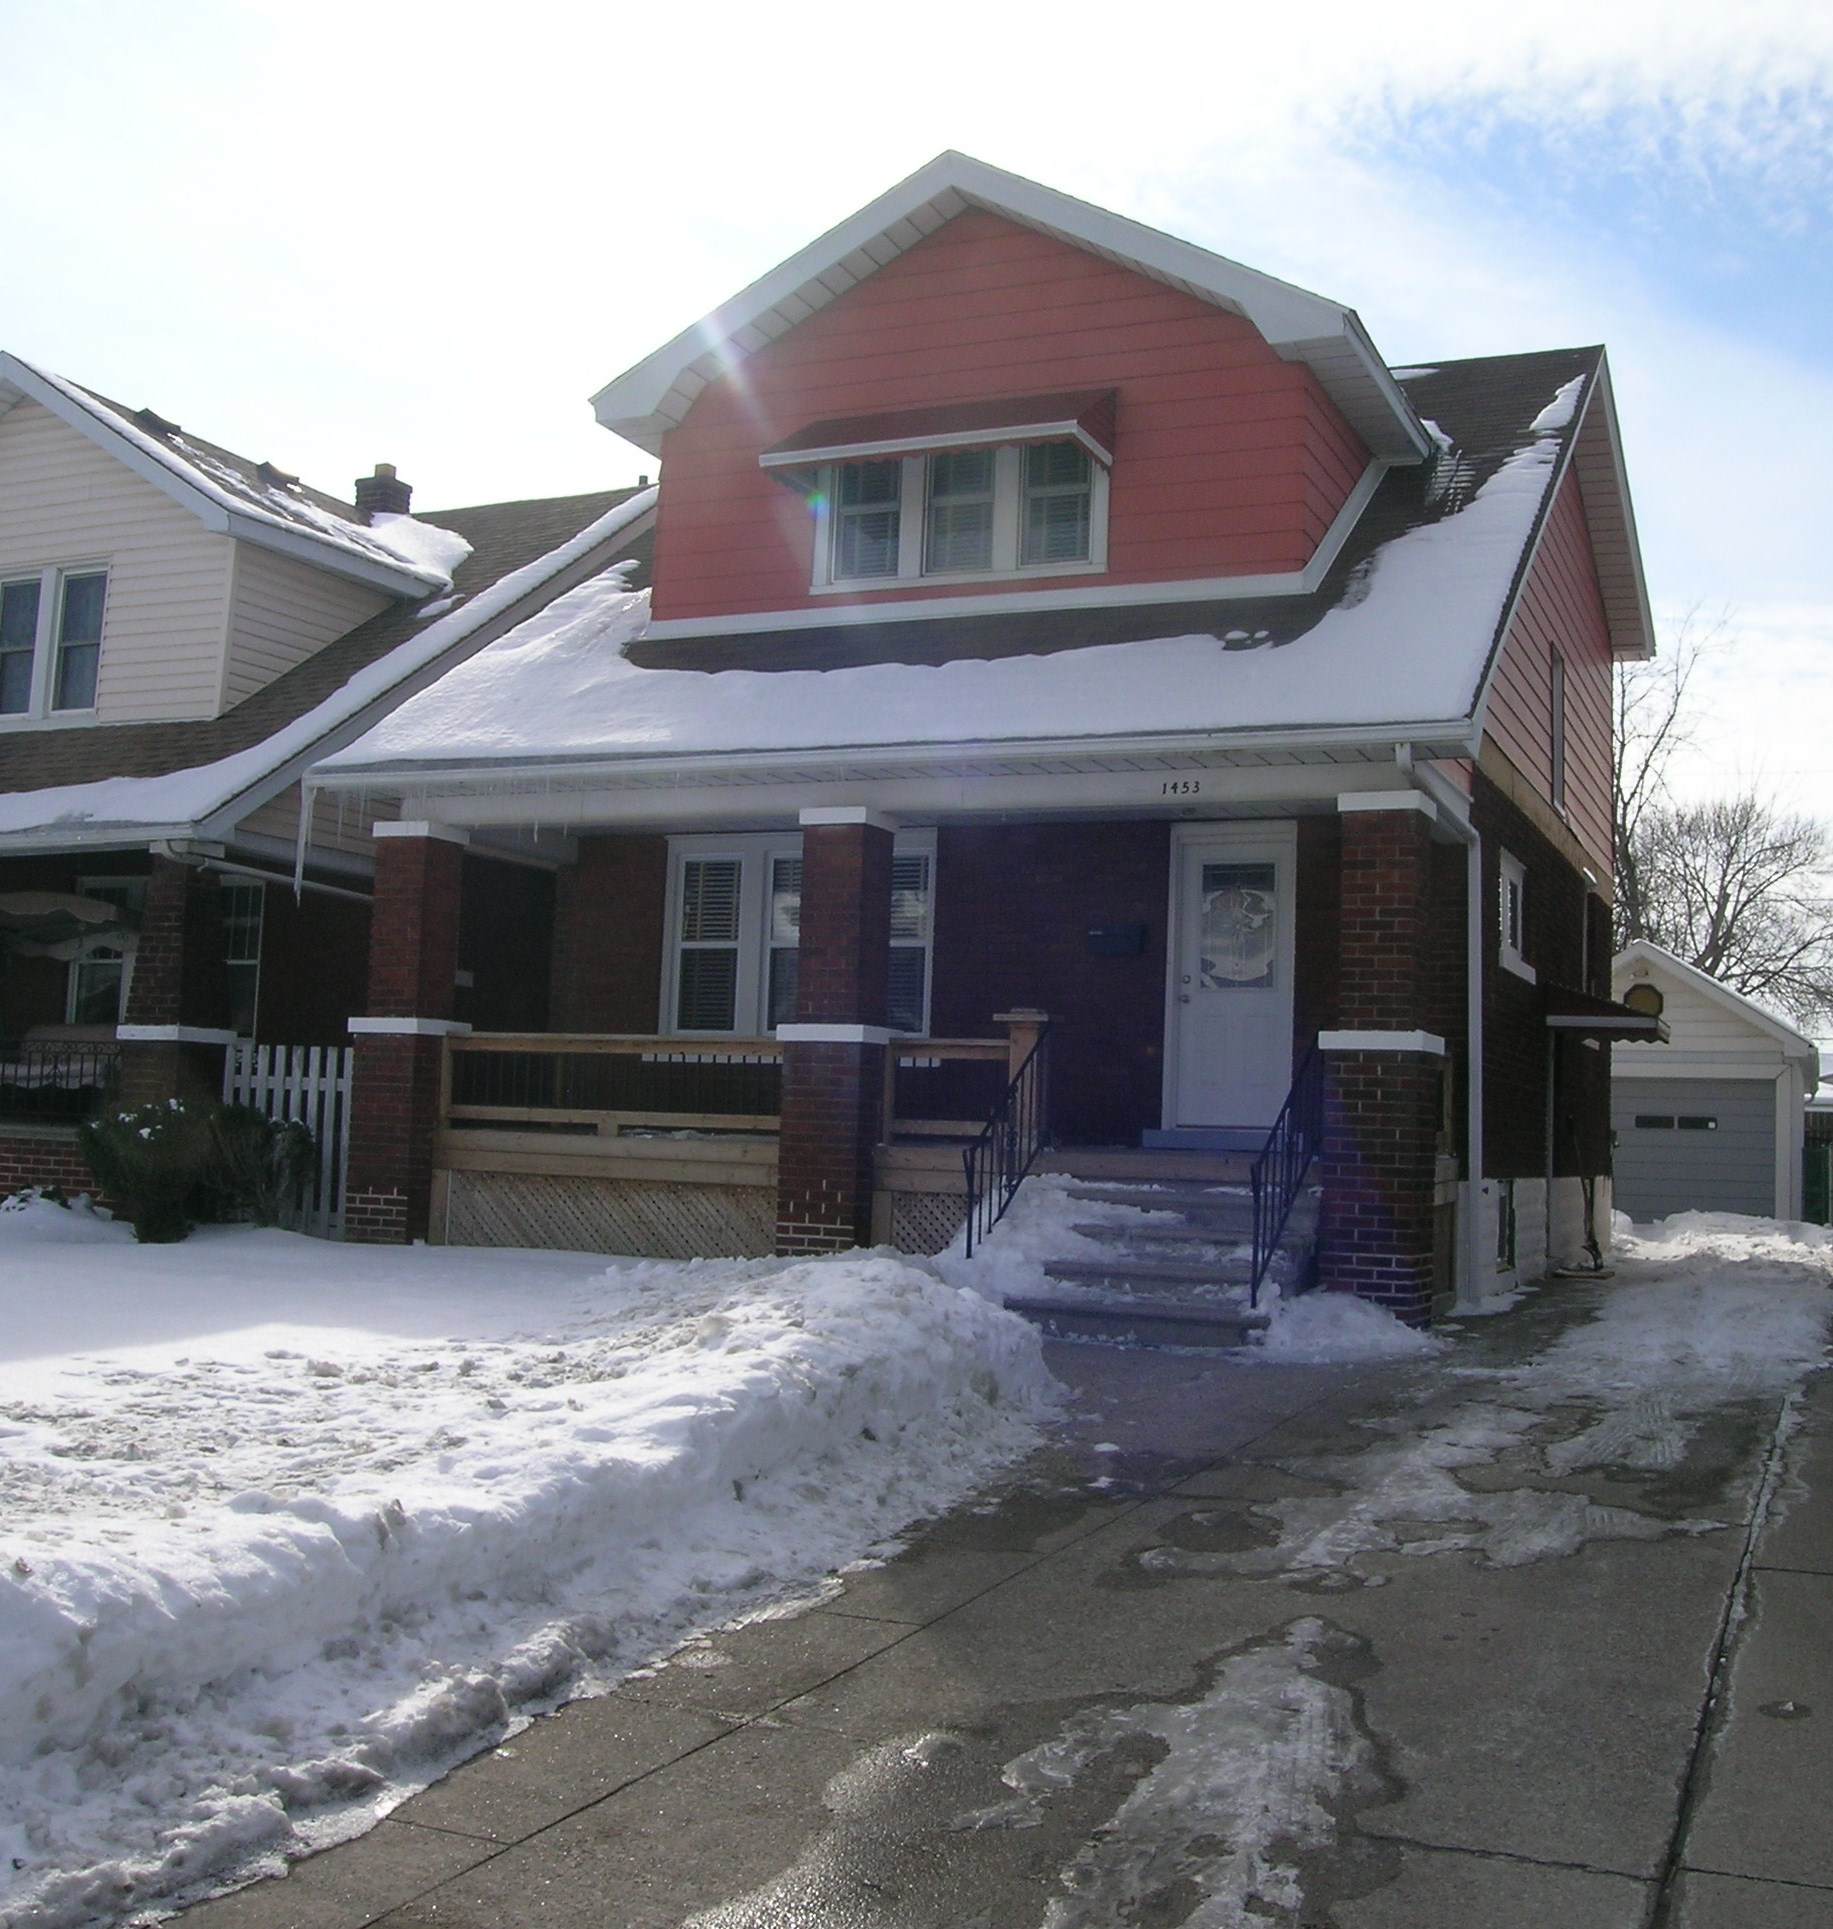 GORGEOUS HOME FEATURING 3 BEDROOMS IN CENTRAL LOCATION